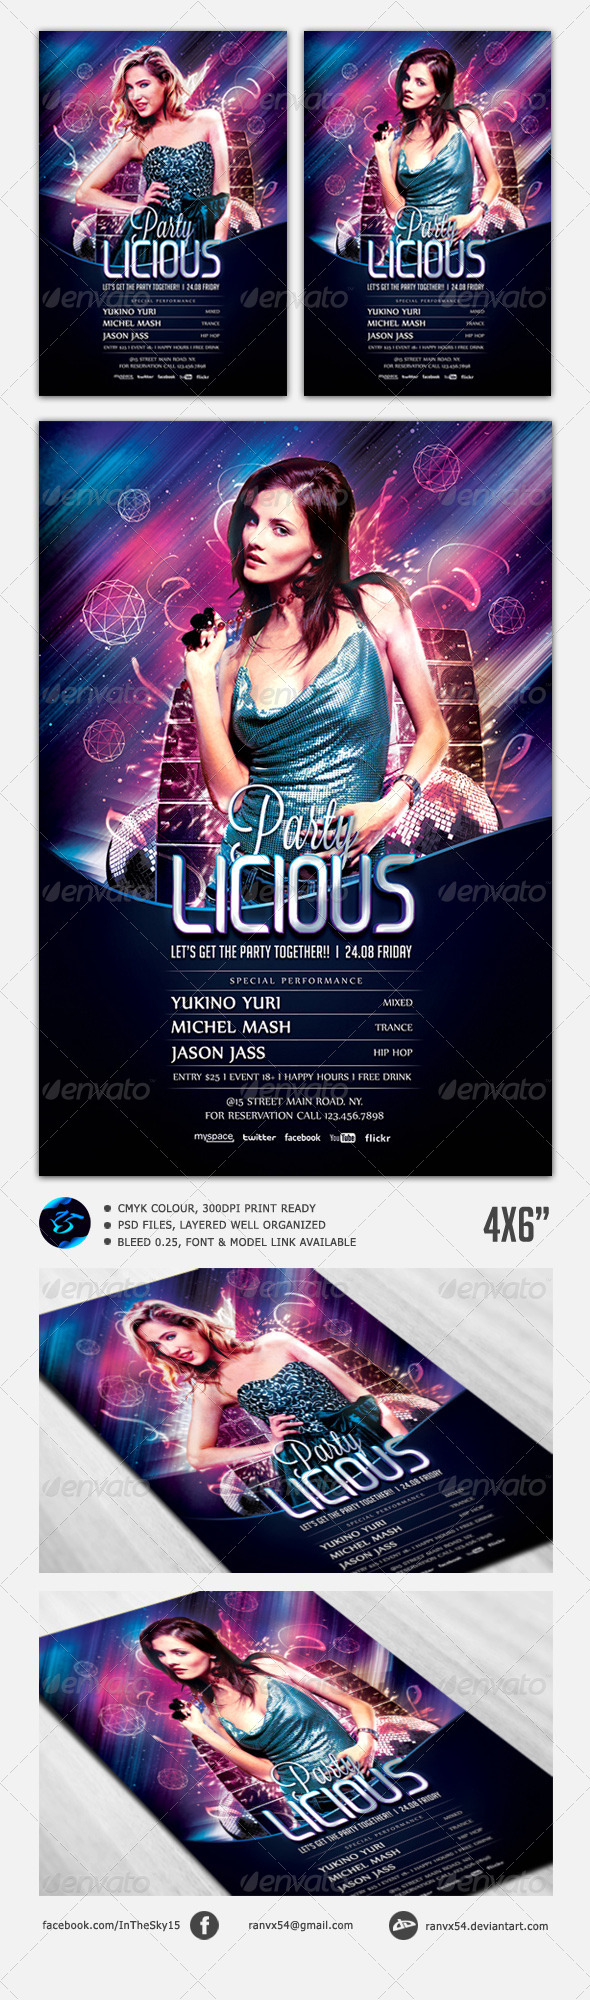 Party Licious Flyer Template - Flyers Print Templates